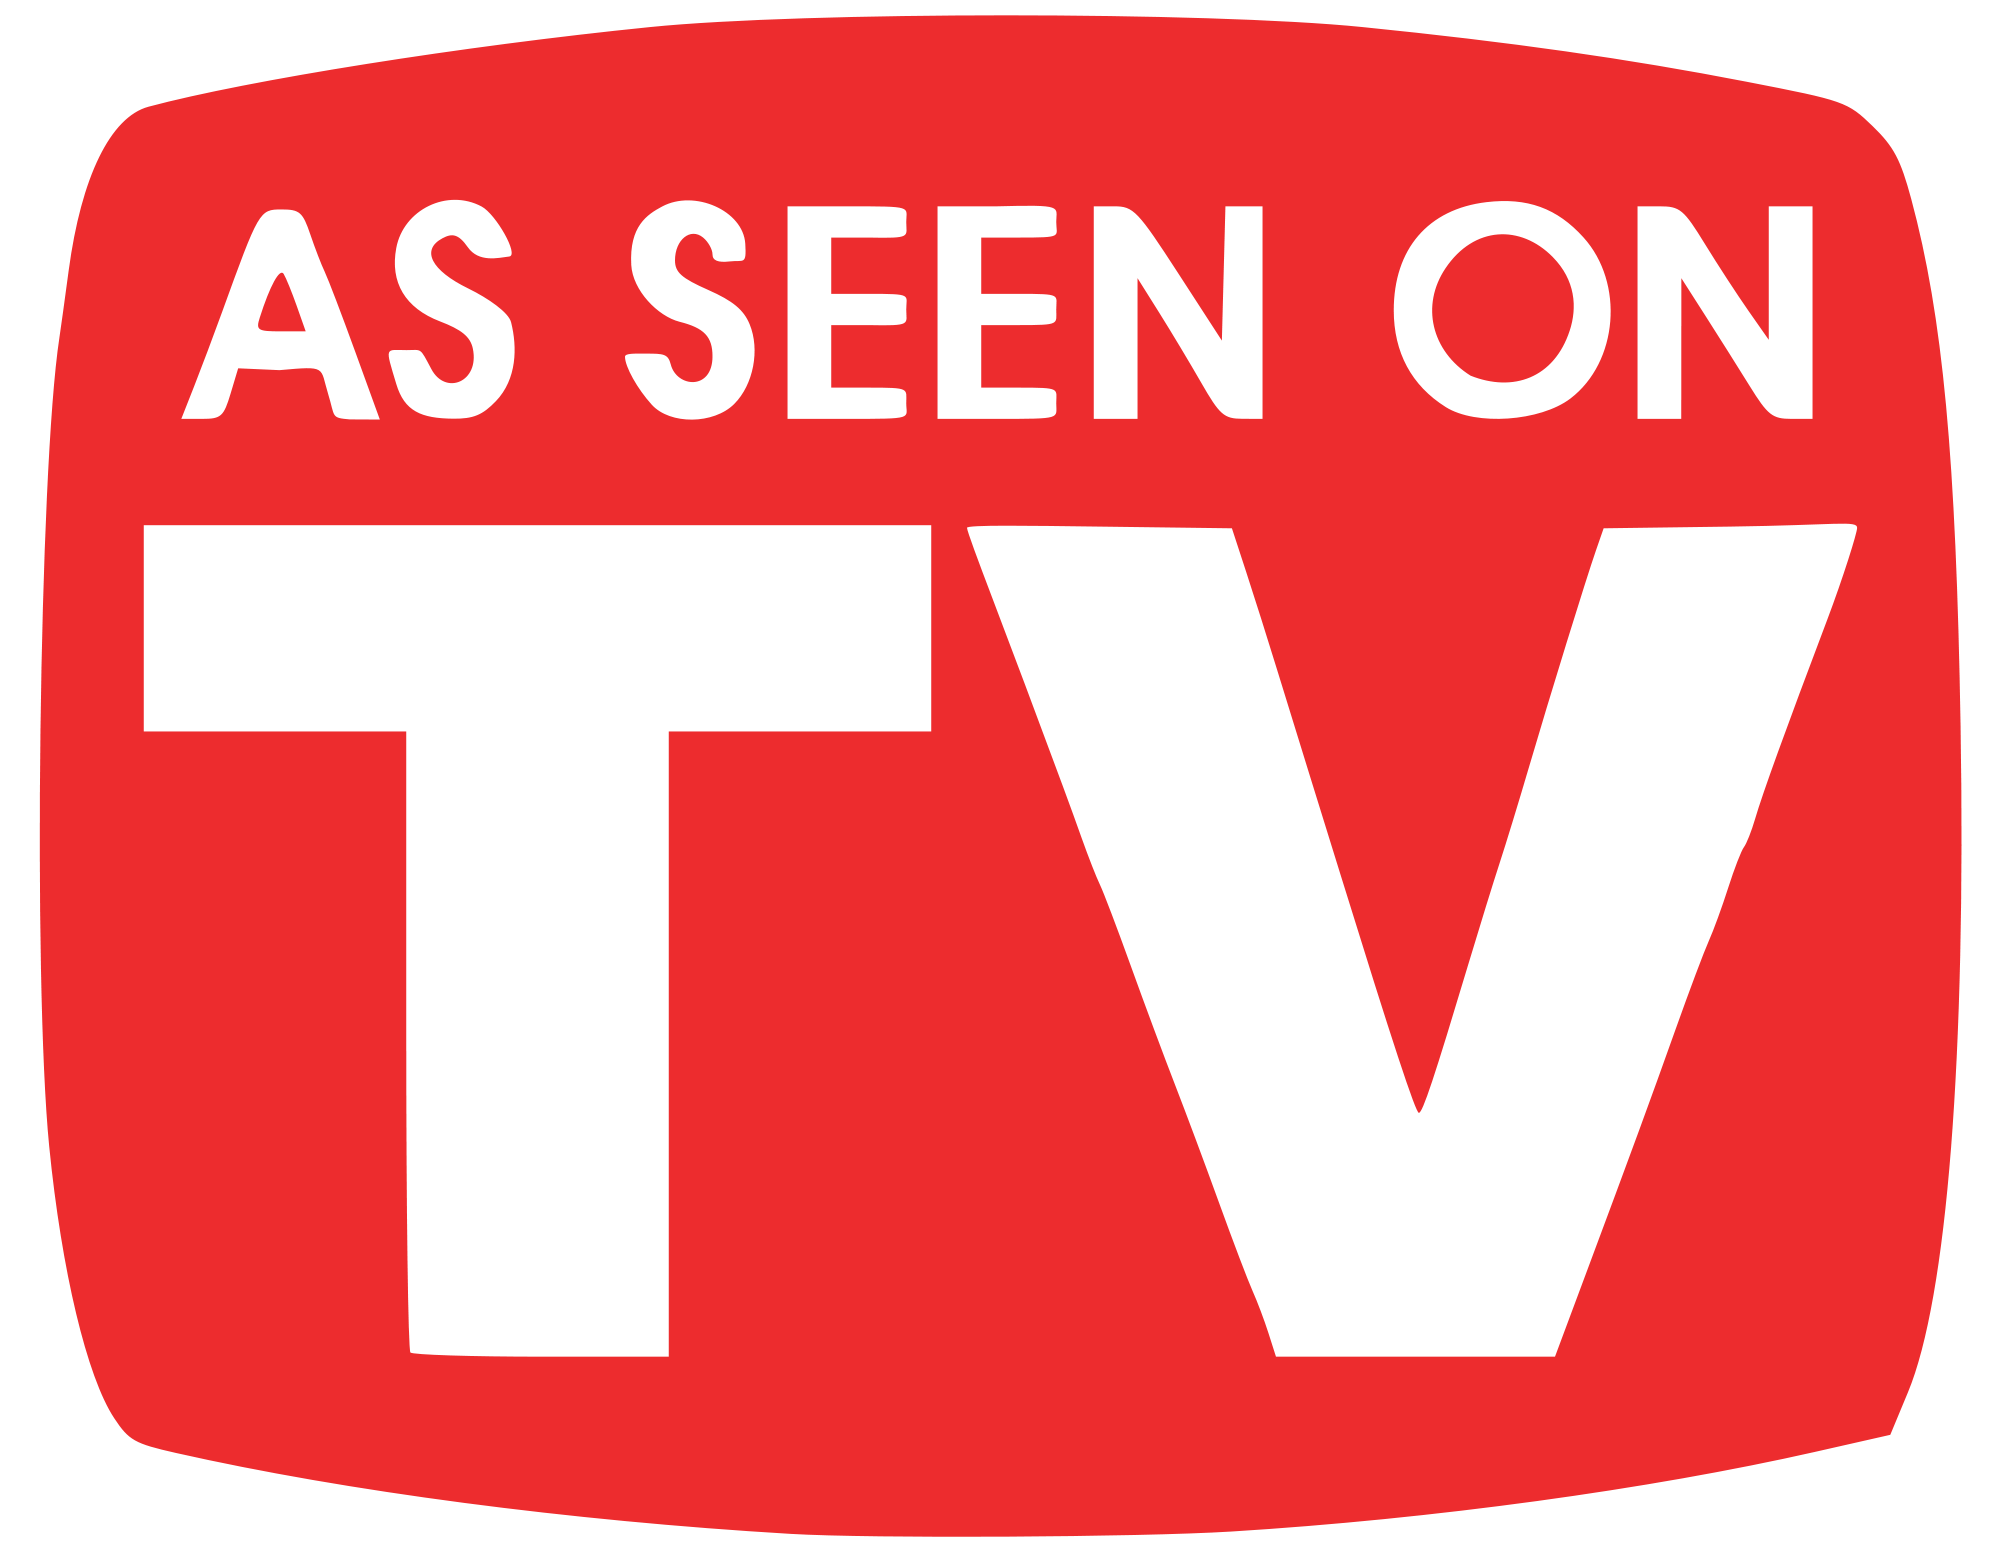 Free Australian TV guide featuring complete program listings across every TV channel by day, time, and genre. Click here to find what is on TV in Australia.